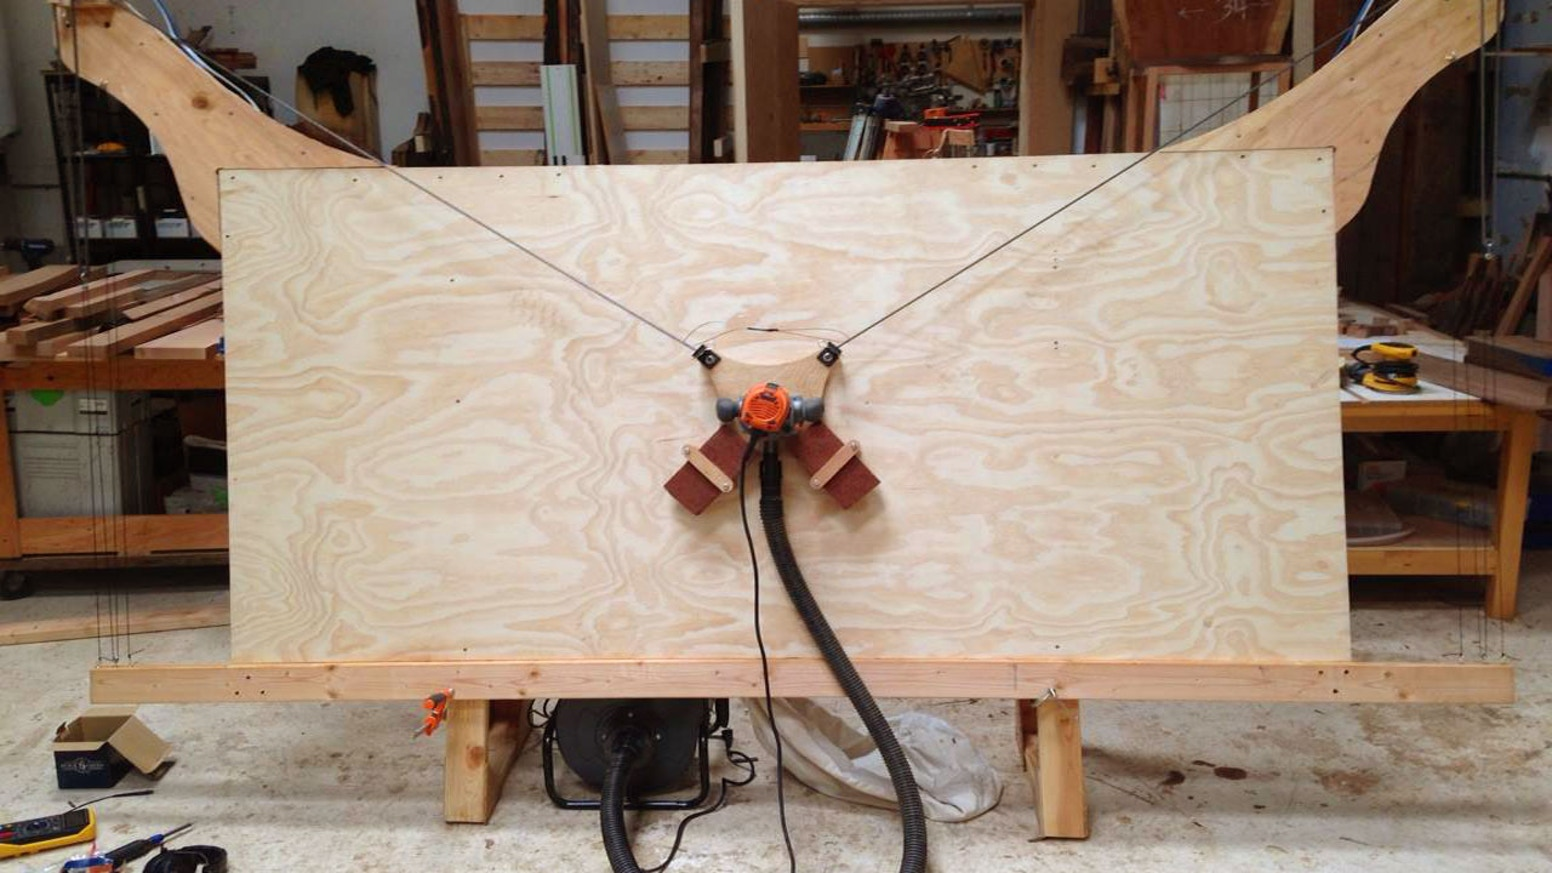 An open source 4 by 8 foot CNC cutting machine for under $500. A router designed to let you cut big, useful things out of wood and more